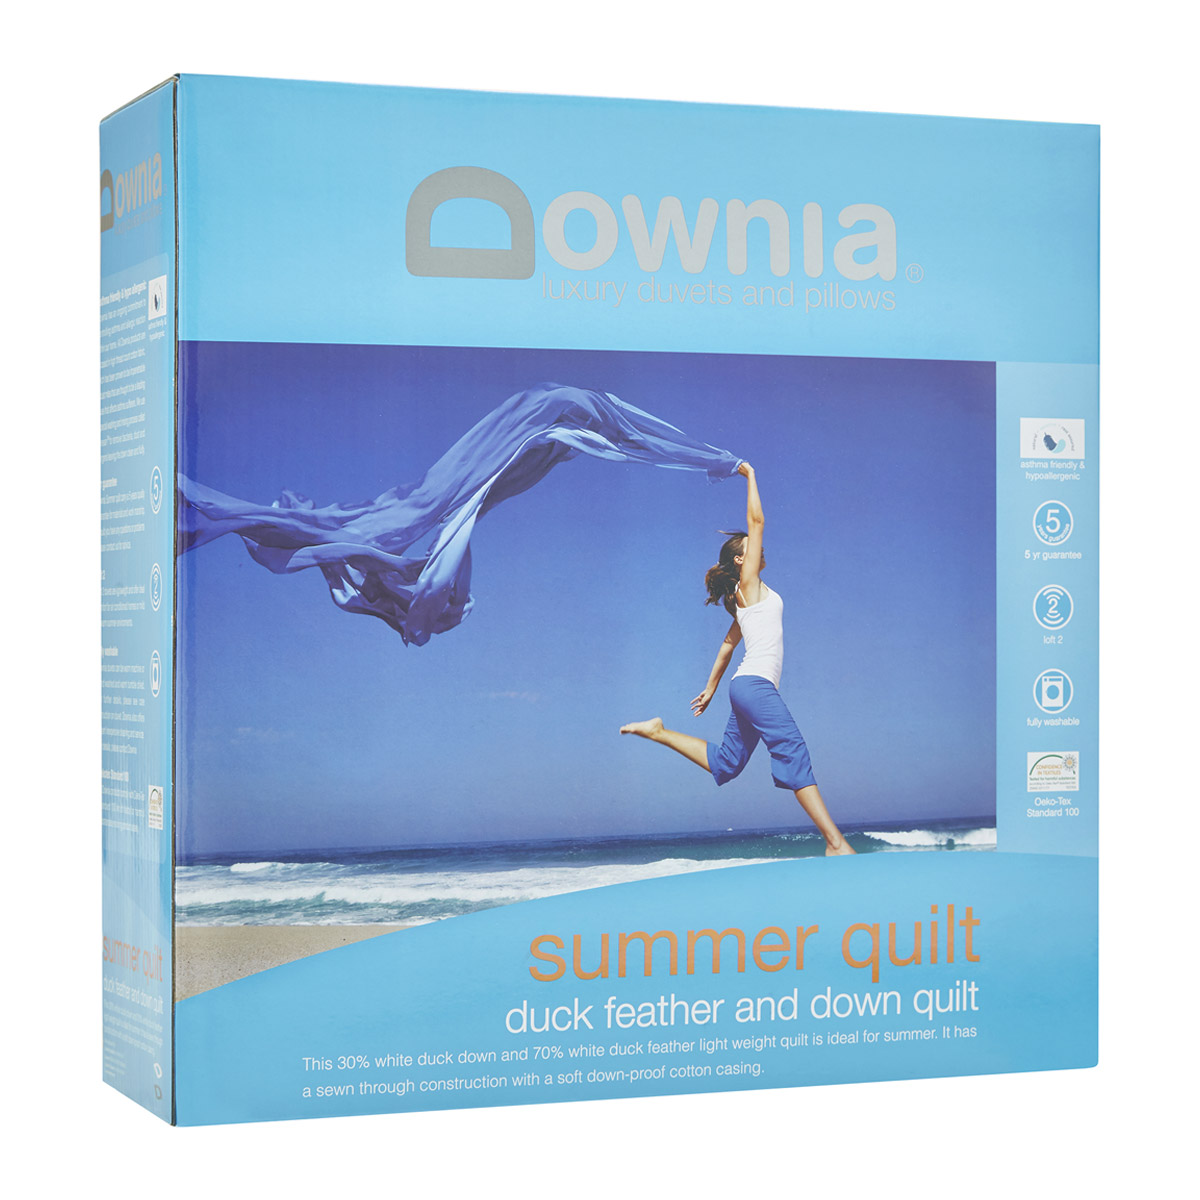 Downia Summer Lightweight Duck Feather and Down Quilt